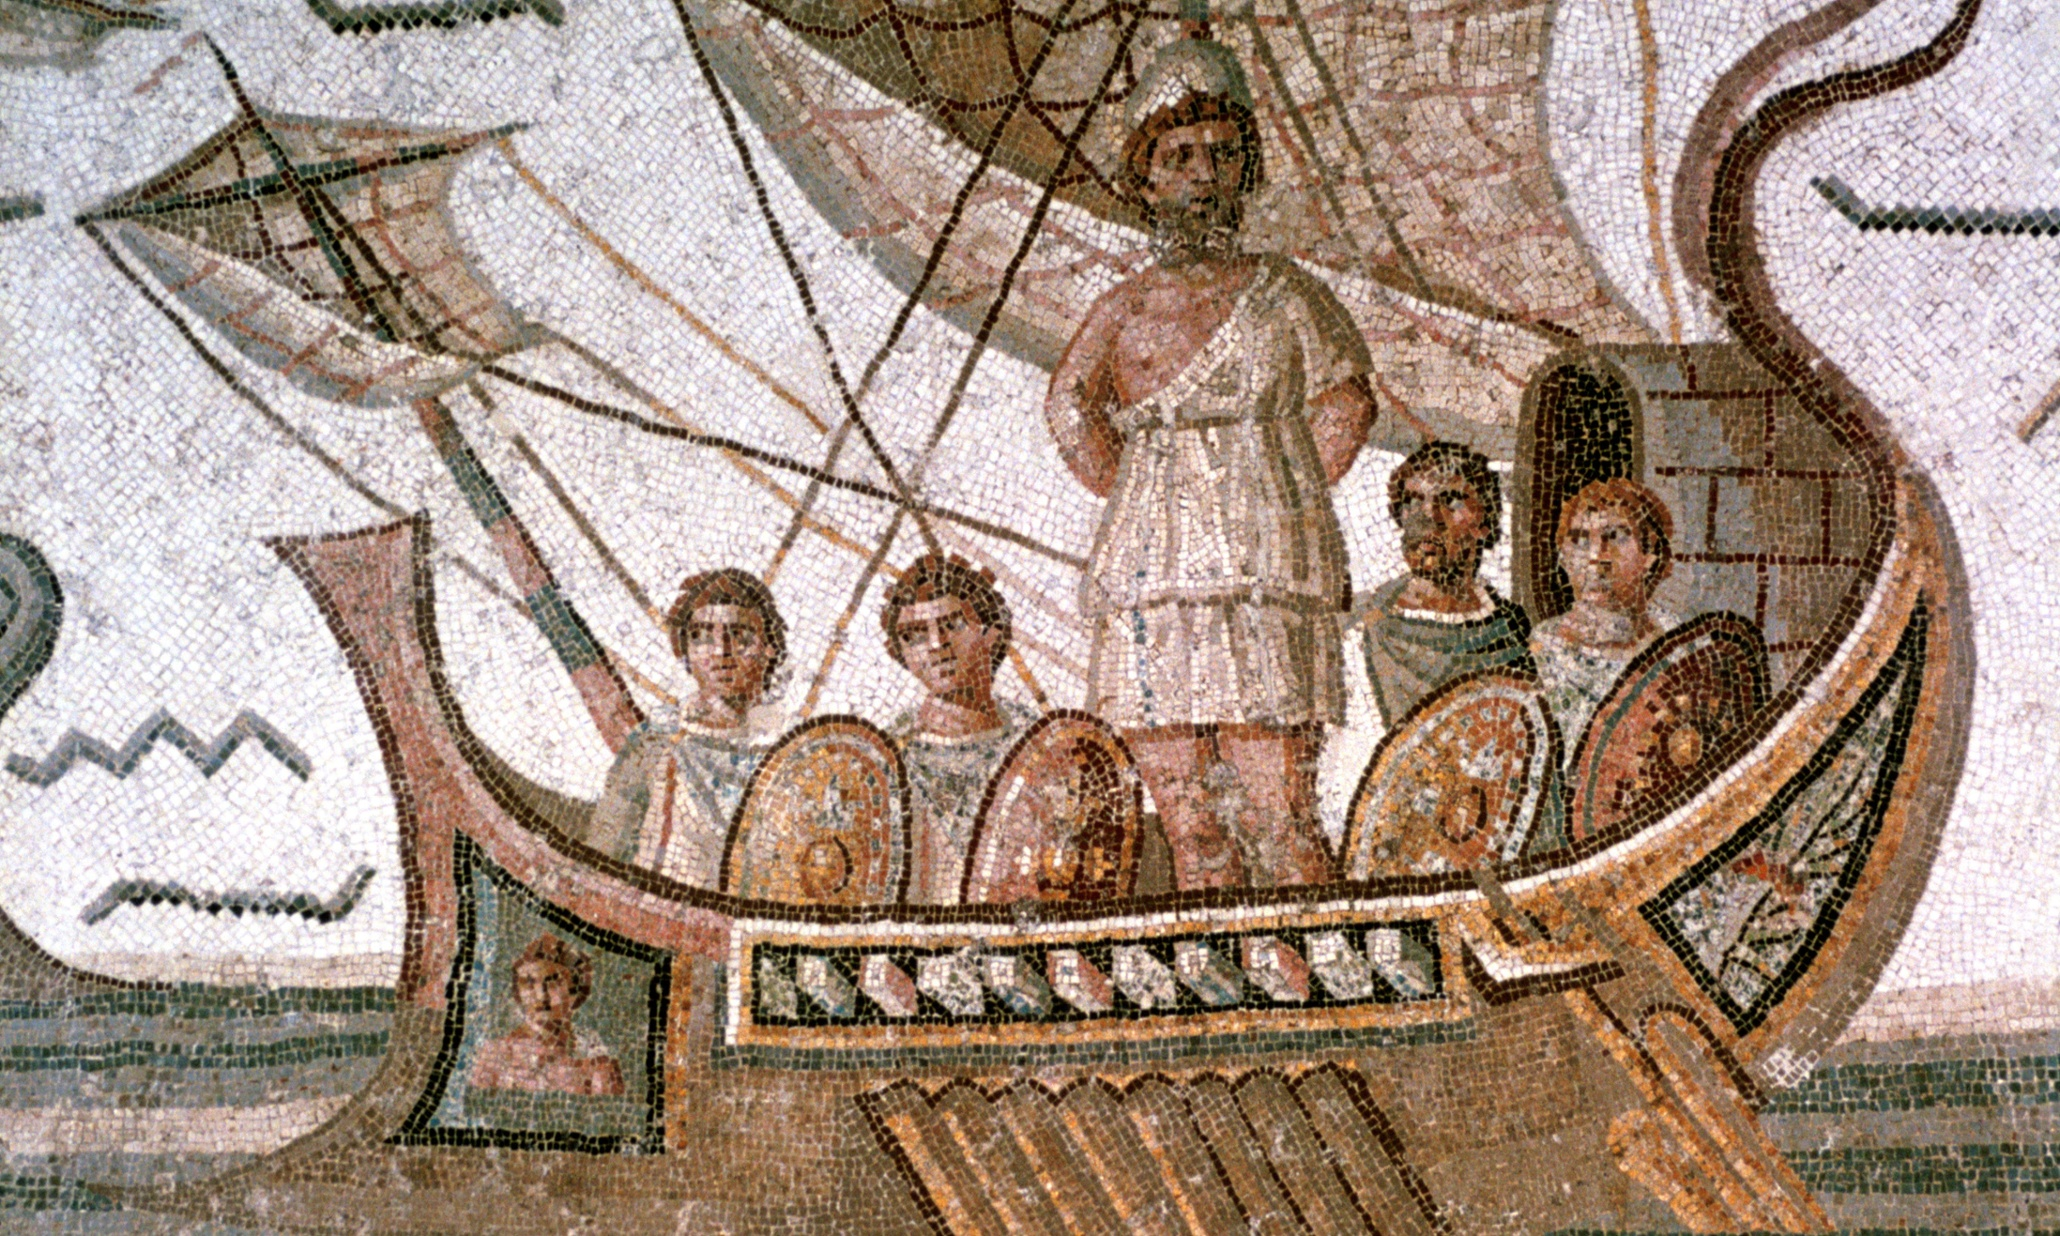 a summary of the story of odysseus and the cyclops in the odyssey an epic poem by homer Homer tells the story of odysseus—also known as ulysses depict aspects of the story why is the odyssey still carole odysseus and the sirens.